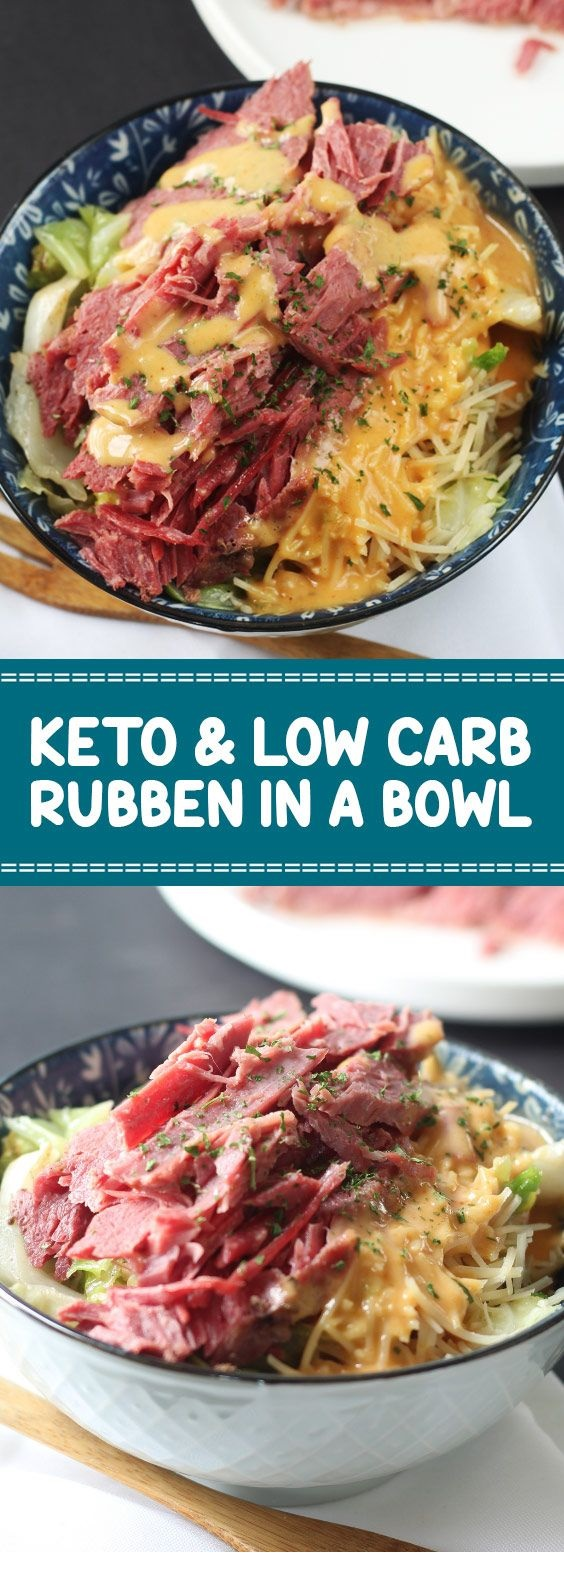 Keto & Low Carb Ruben In A Bowl